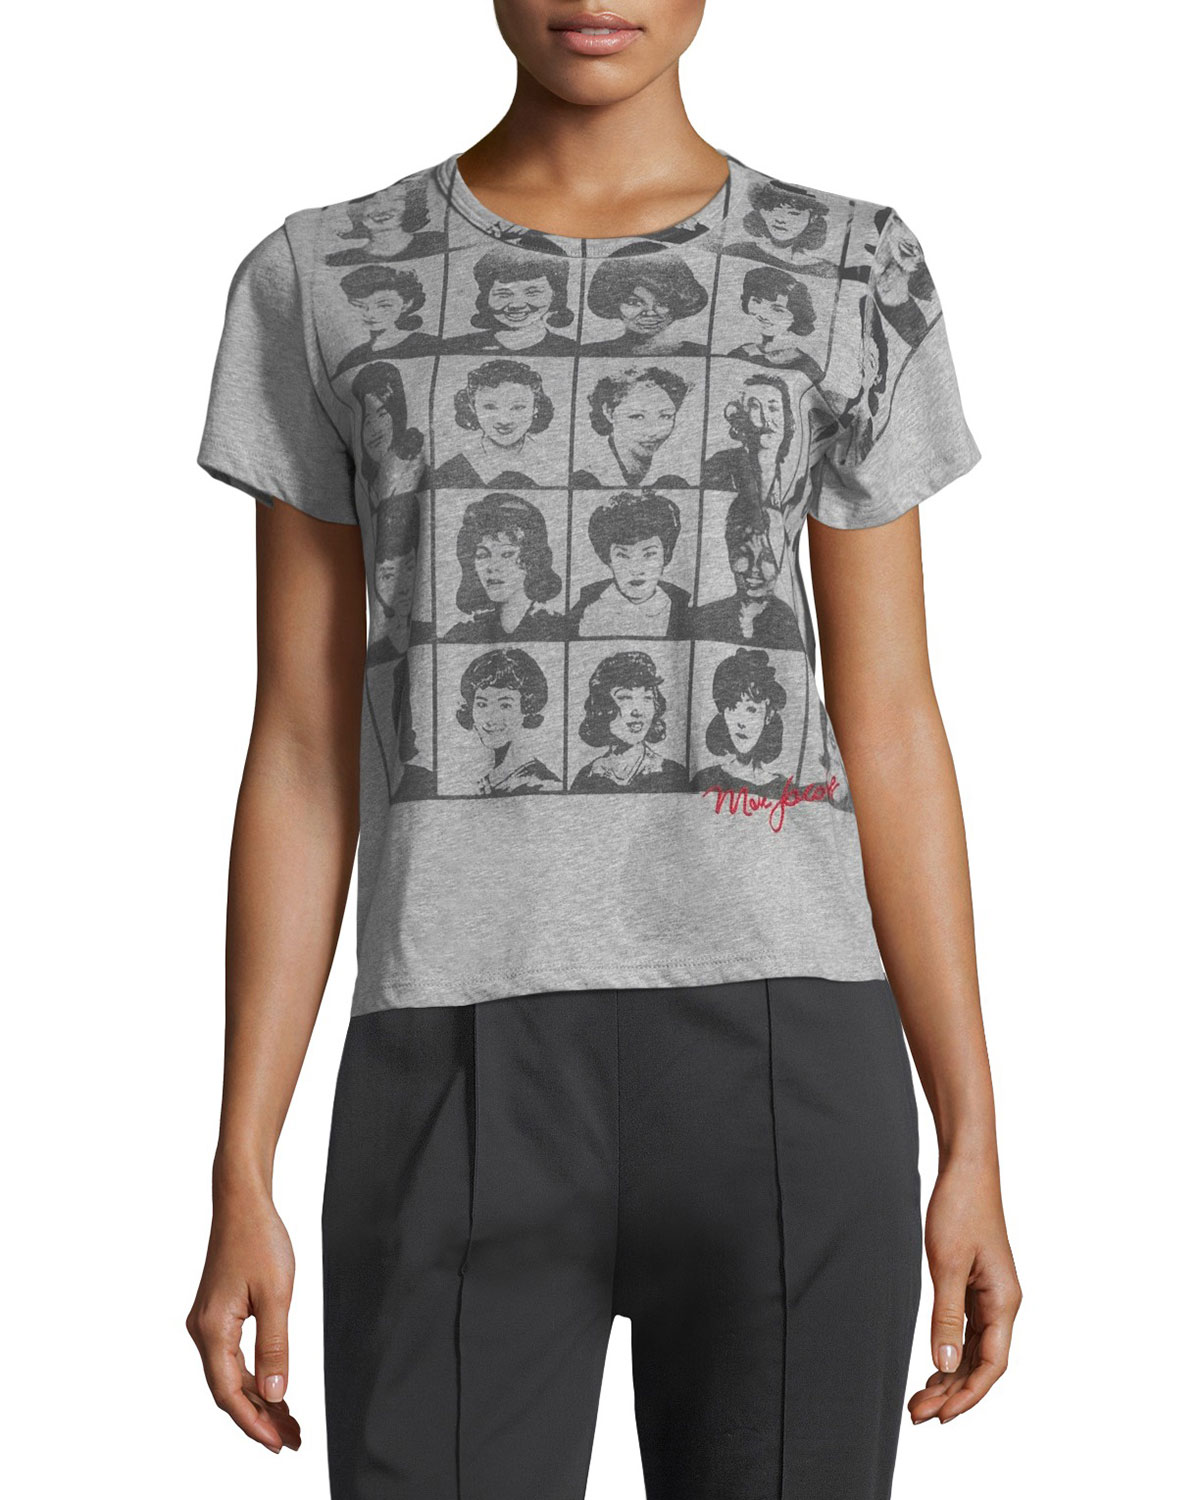 Yearbook-Print Short-Sleeve Cotton Tee